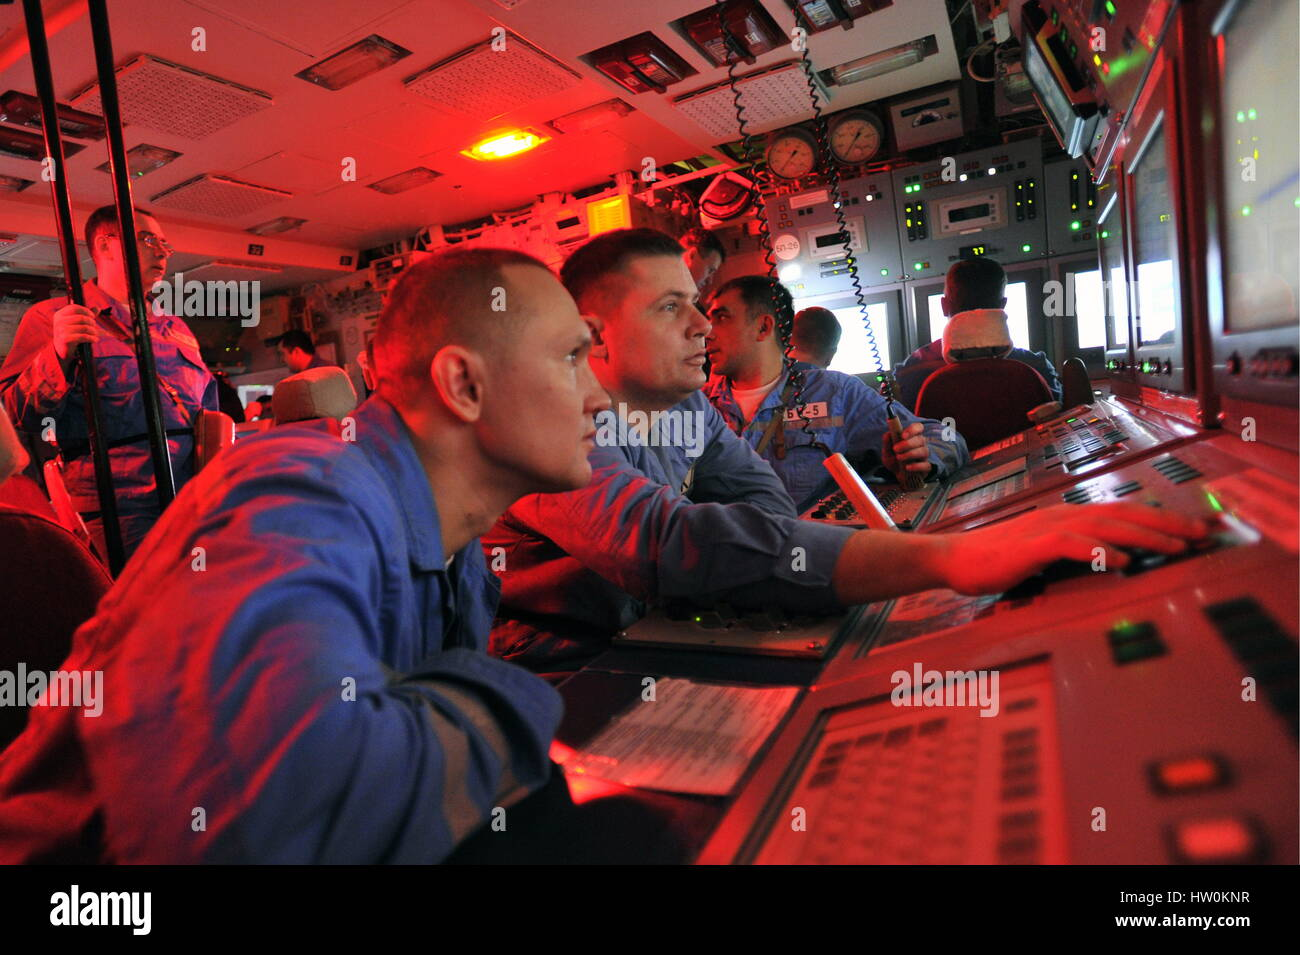 Murmansk Region, Russia. 16th Mar, 2017. Crew members at the central command post of Russia's Yury Dolgoruky - Stock Image